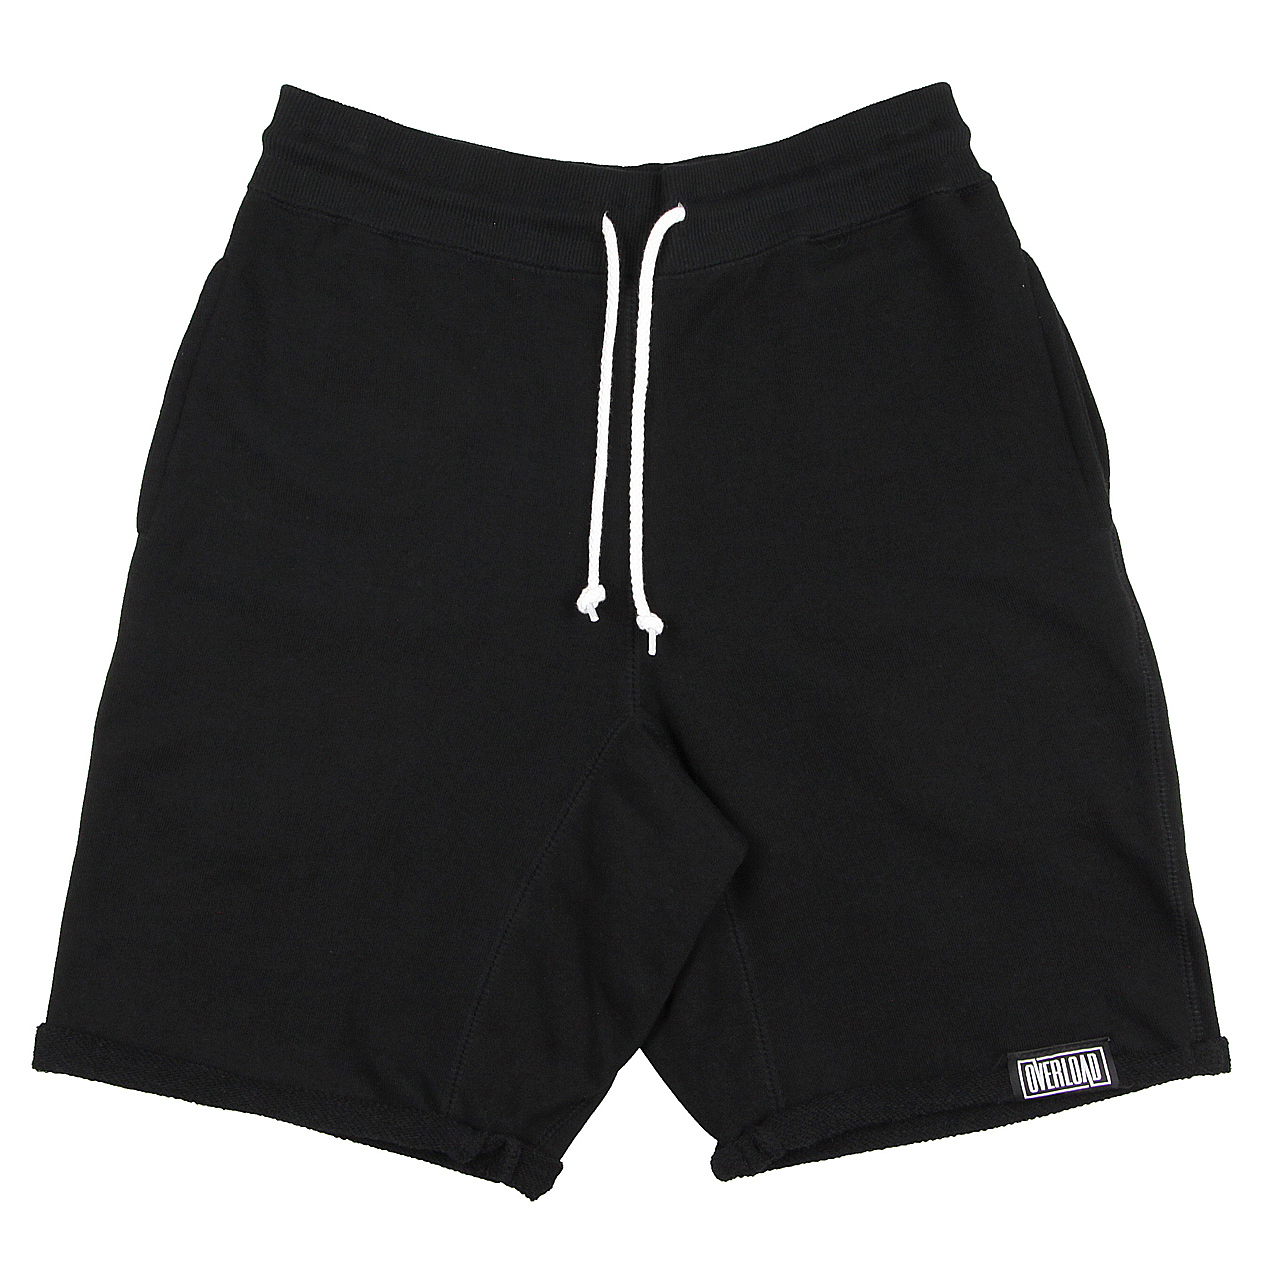 overload-shorts-front